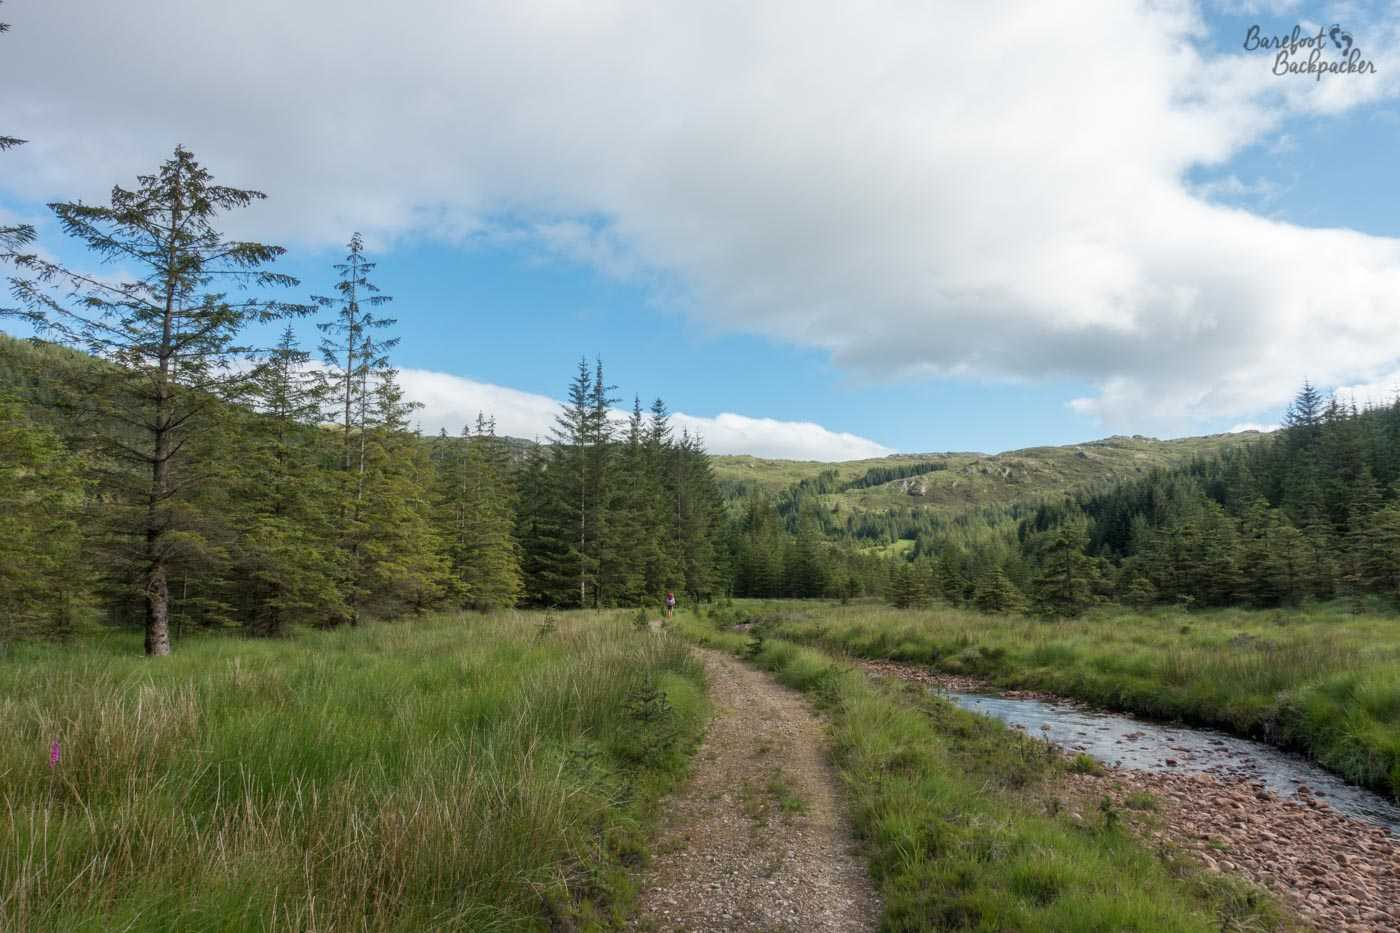 A gravel trail meanders through grass. Just to the right is a small pebbly stream. There are trees either side, conifer/pine type trees. Hills are head. Blue sky and streaky cloud above. Middle of nowhere.